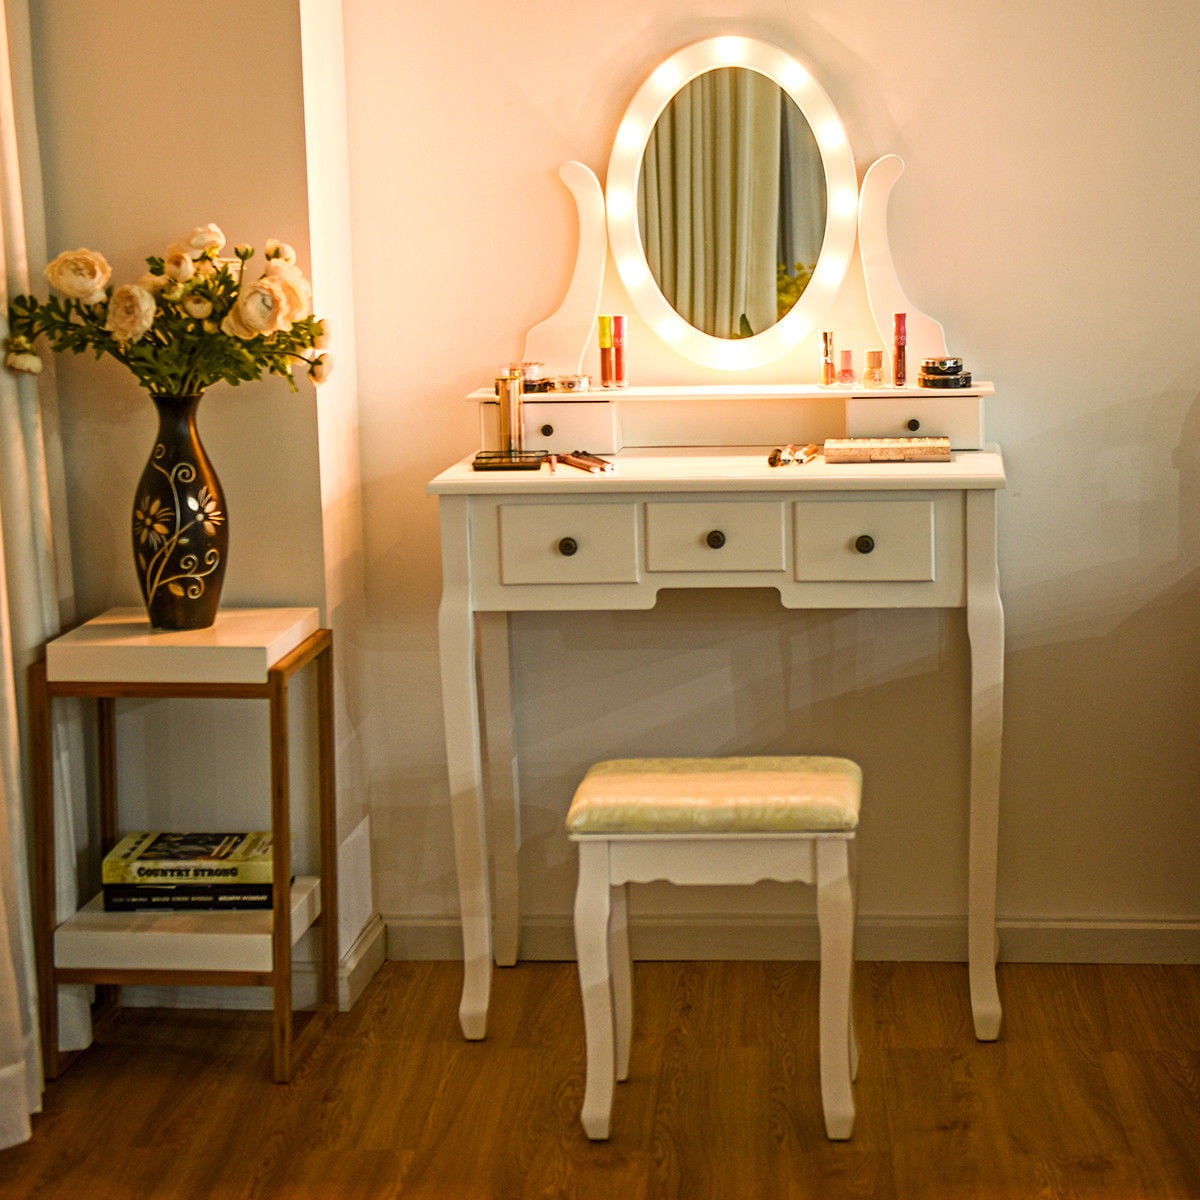 Gymax 5 Drawers Vanity Makeup Dressing Table Stool Set Lighted Mirror W/12 LED Bulbs - Walmart ...